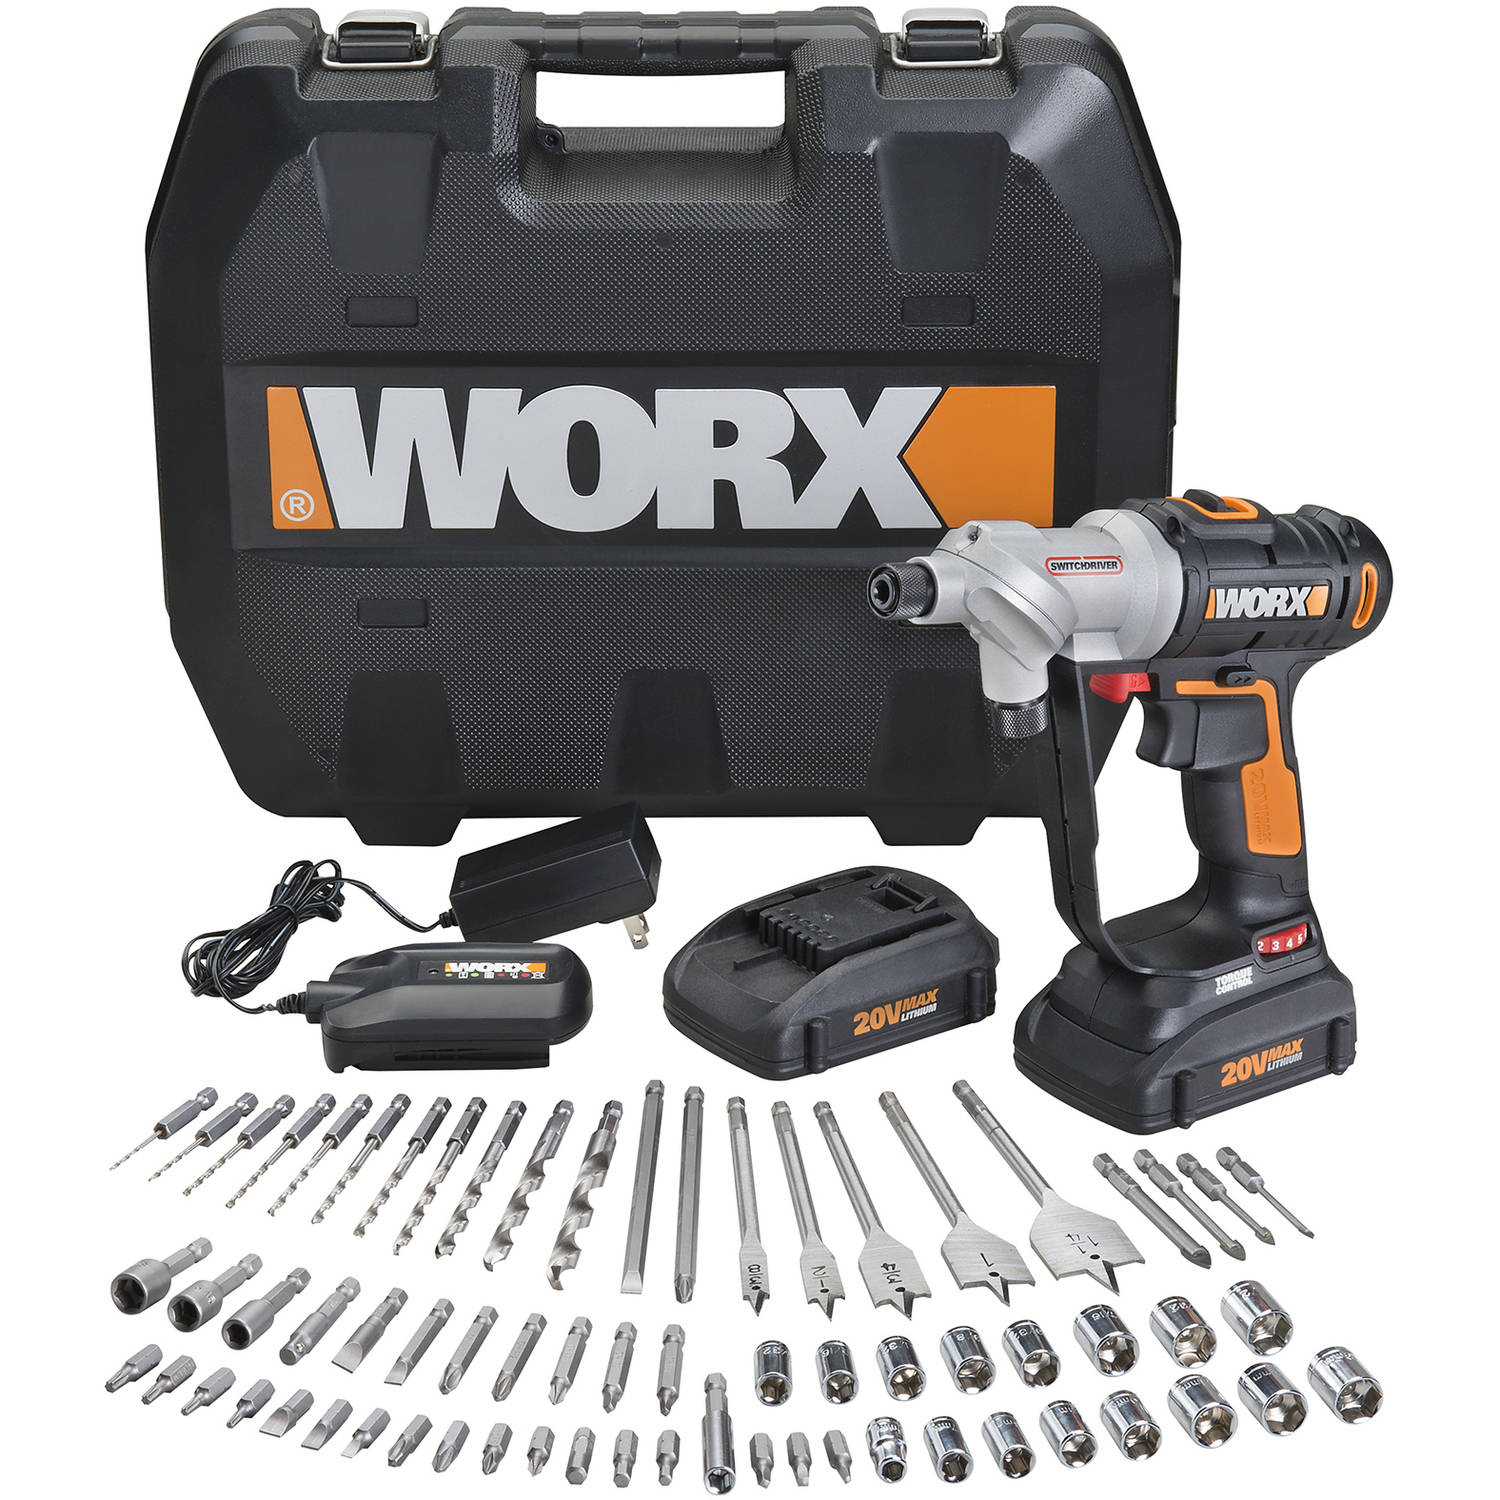 WORX 20-Volt Max* Power Share, Switchdriver Drill-Driver With 67-Piece Accessory Kit, Hex Quick, WX176L.1,